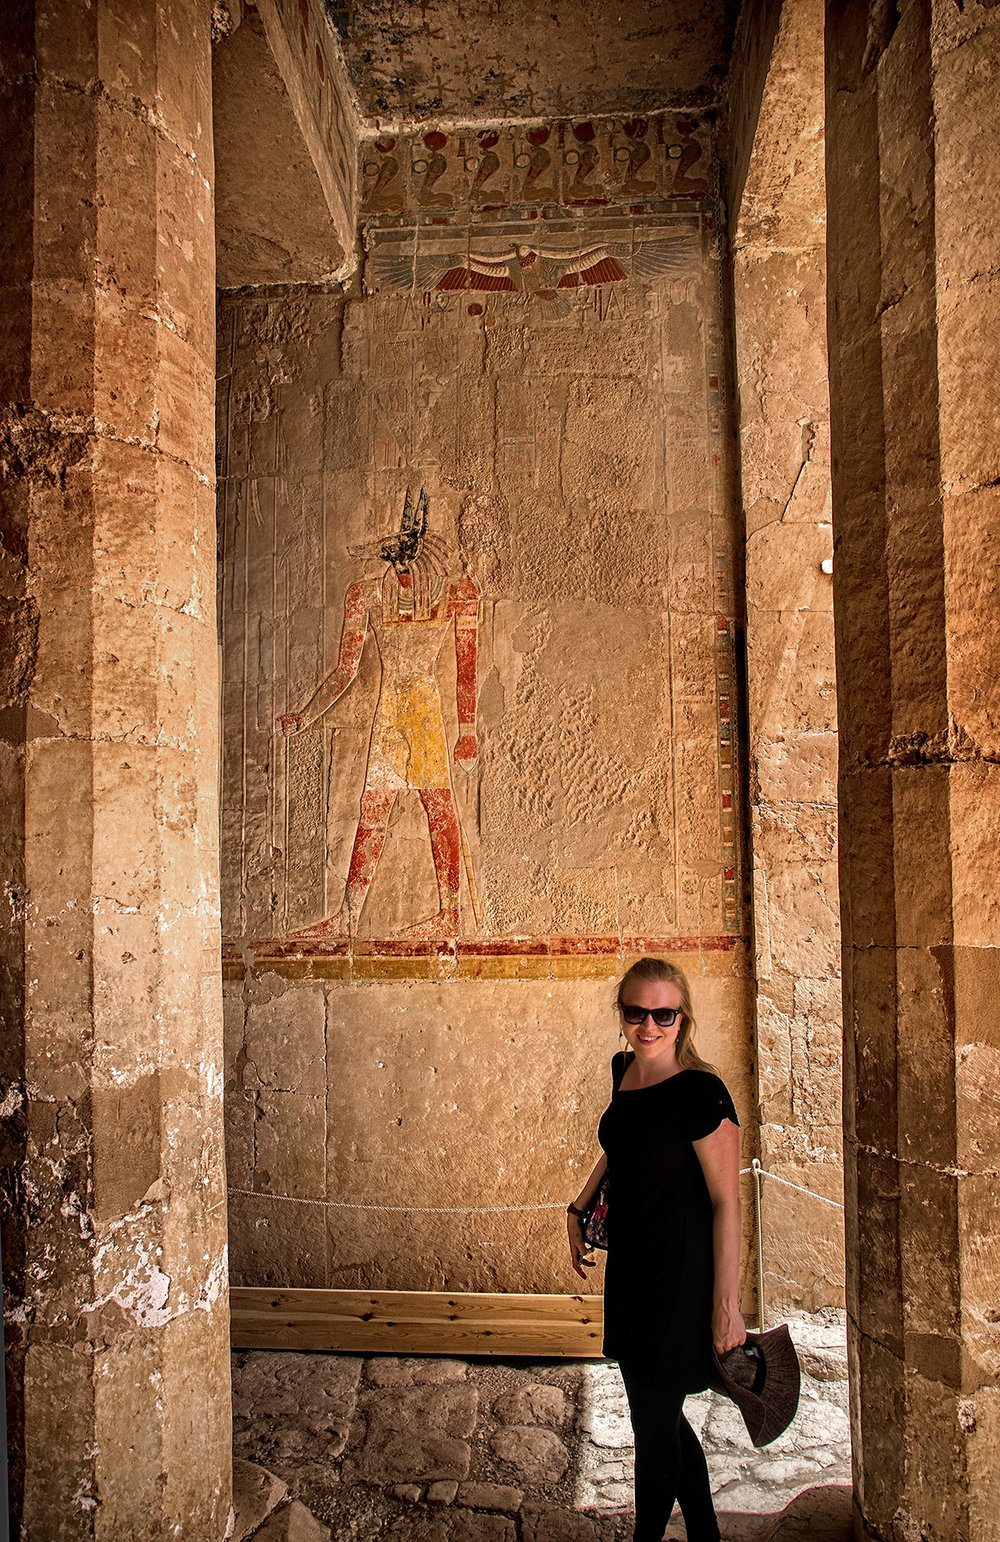 Our intrepid adventurer in the Mortuary Temple of Hatshepsut, the only female pharaoh